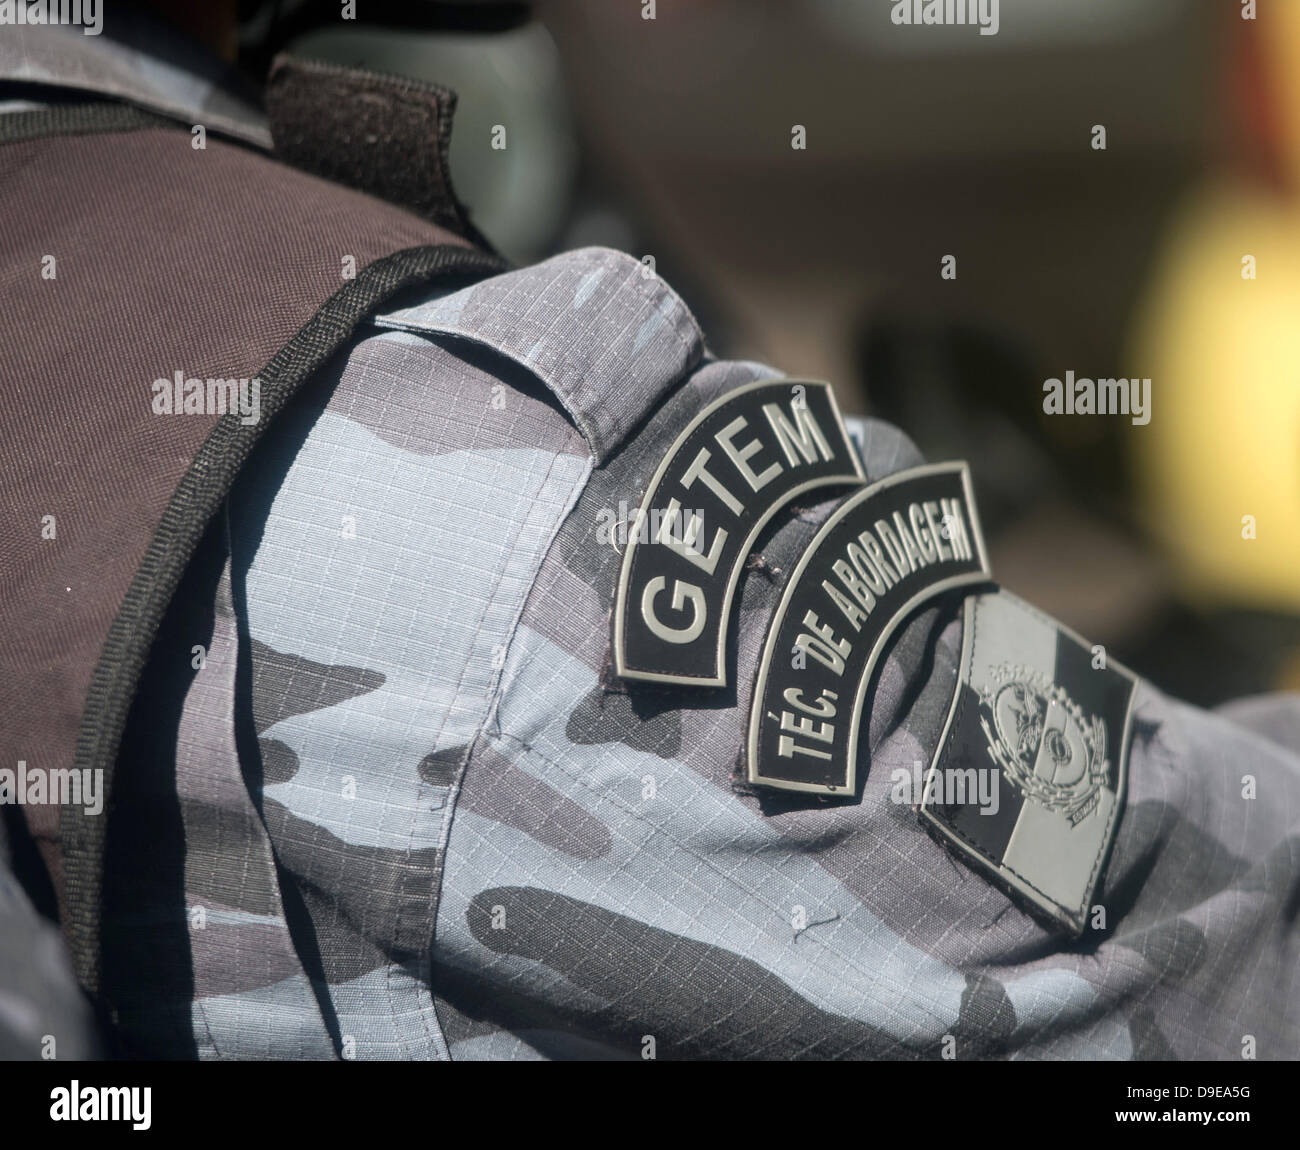 a960283cd The insignia of the Choque police unit is on display on a shoulder pad of a